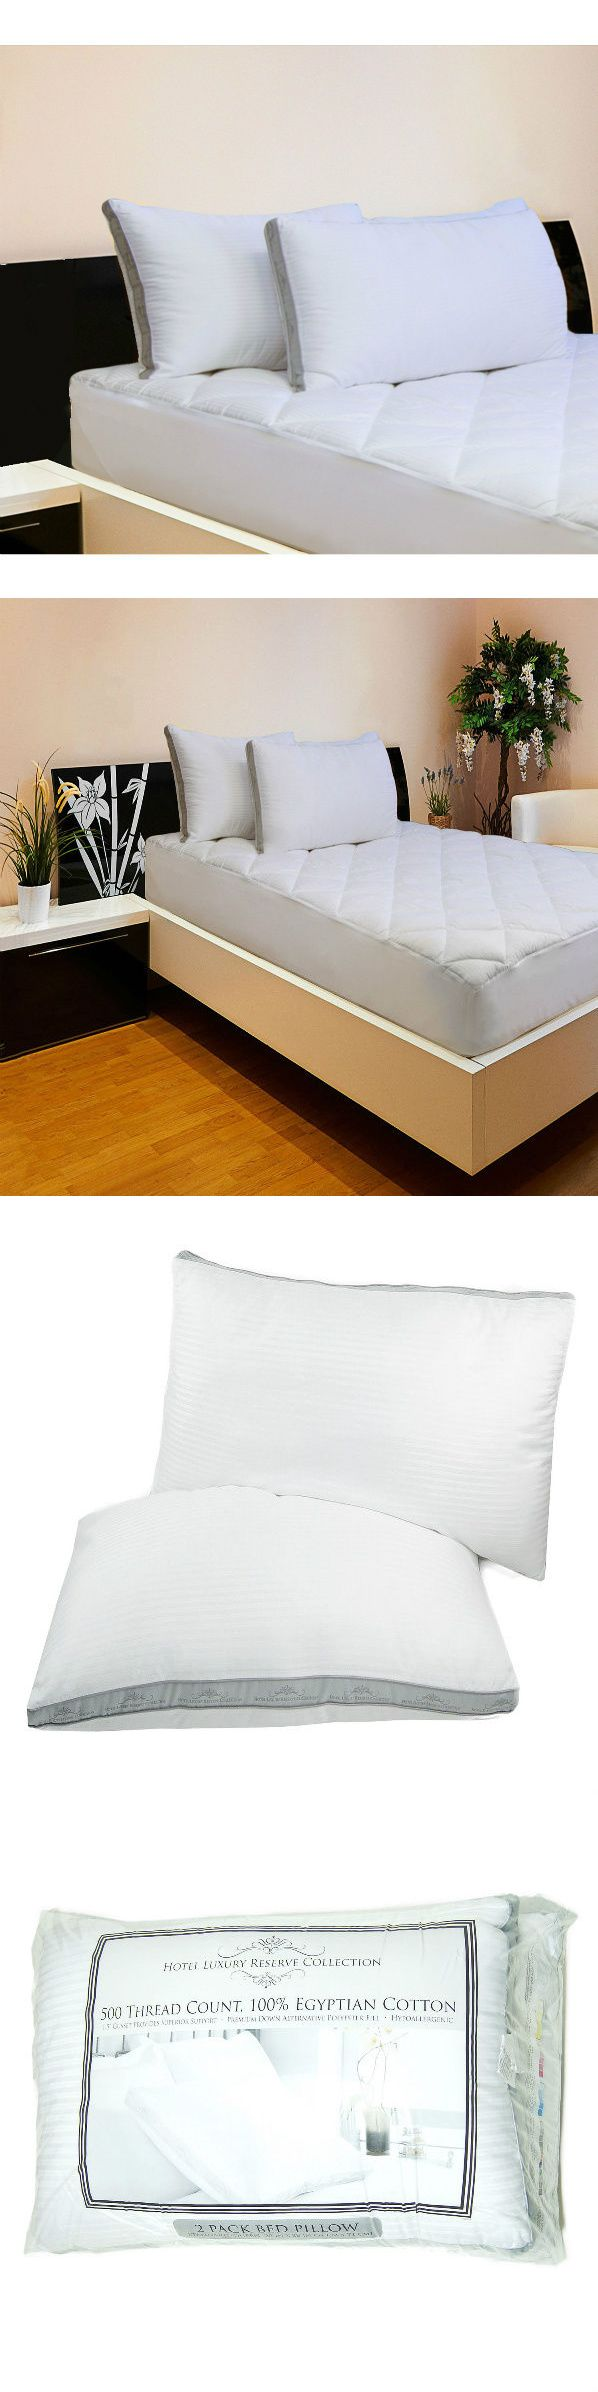 Bed Pillows 20445: King Size Pillows Set Of 2 My Big Luxury Hotel Bed Pillow -> BUY IT NOW ONLY: $33.95 on eBay!